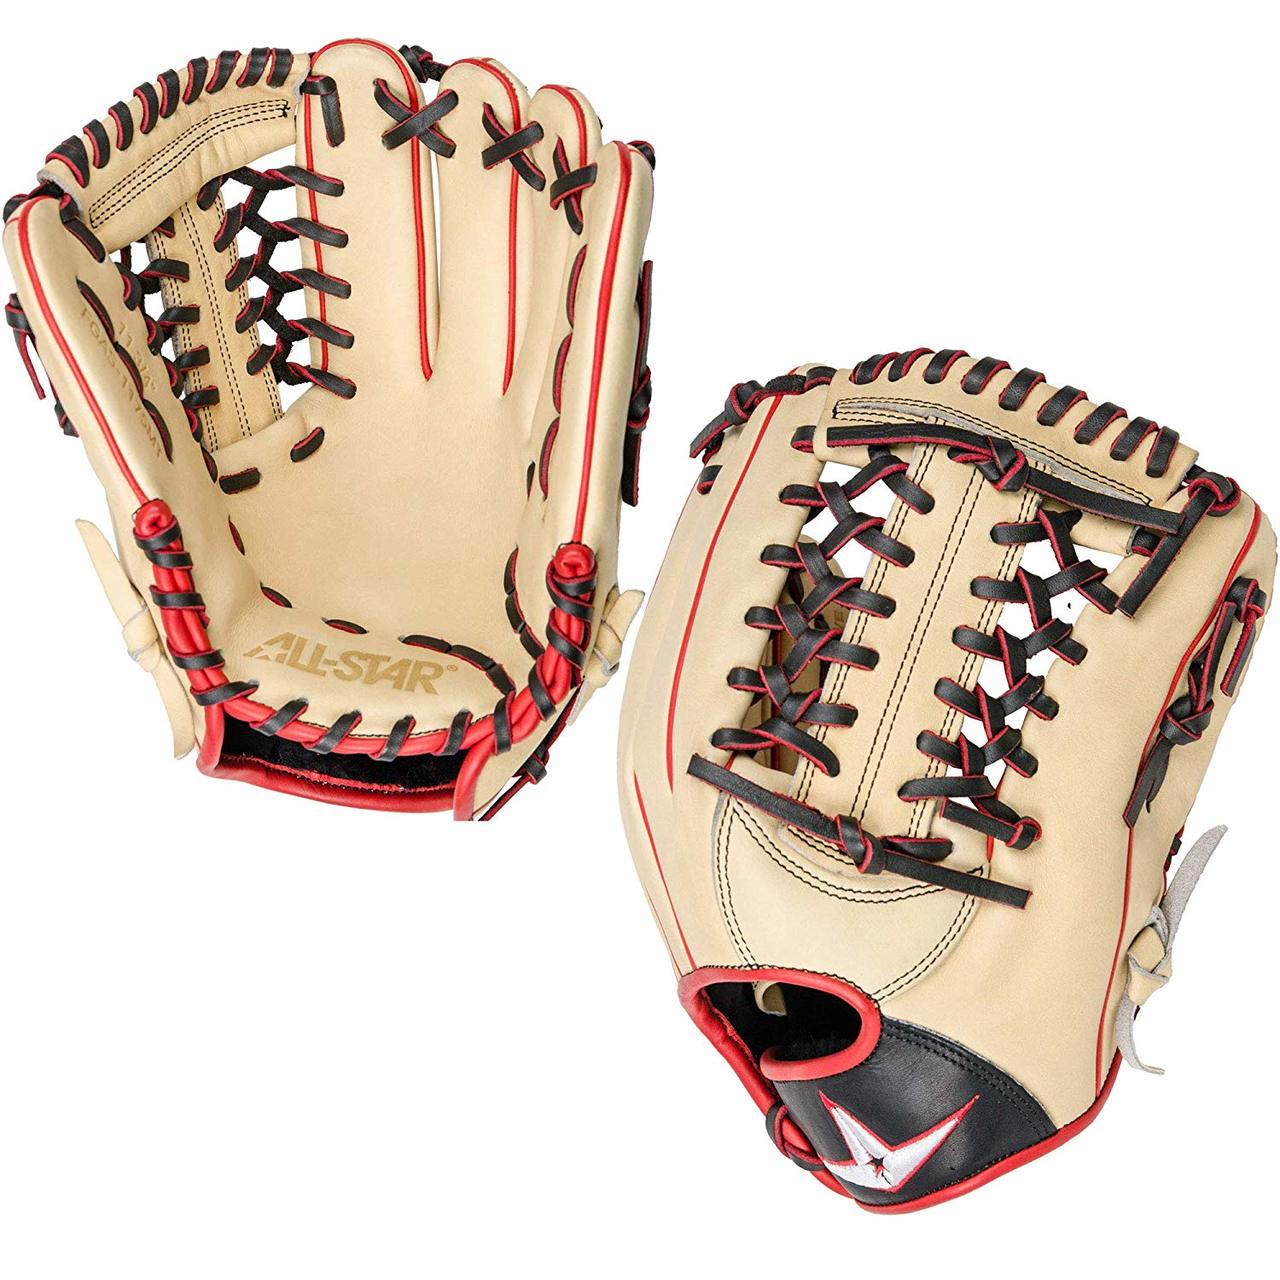 all-star-pro-elite-11-75-baseball-glove-cream-black-scarlet-right-hand-throw FGAS-1175MT-CRBKSC-RightHandThrow All-Star 029343048258 What makes Pro Elite the most trusted mitt behind the dish